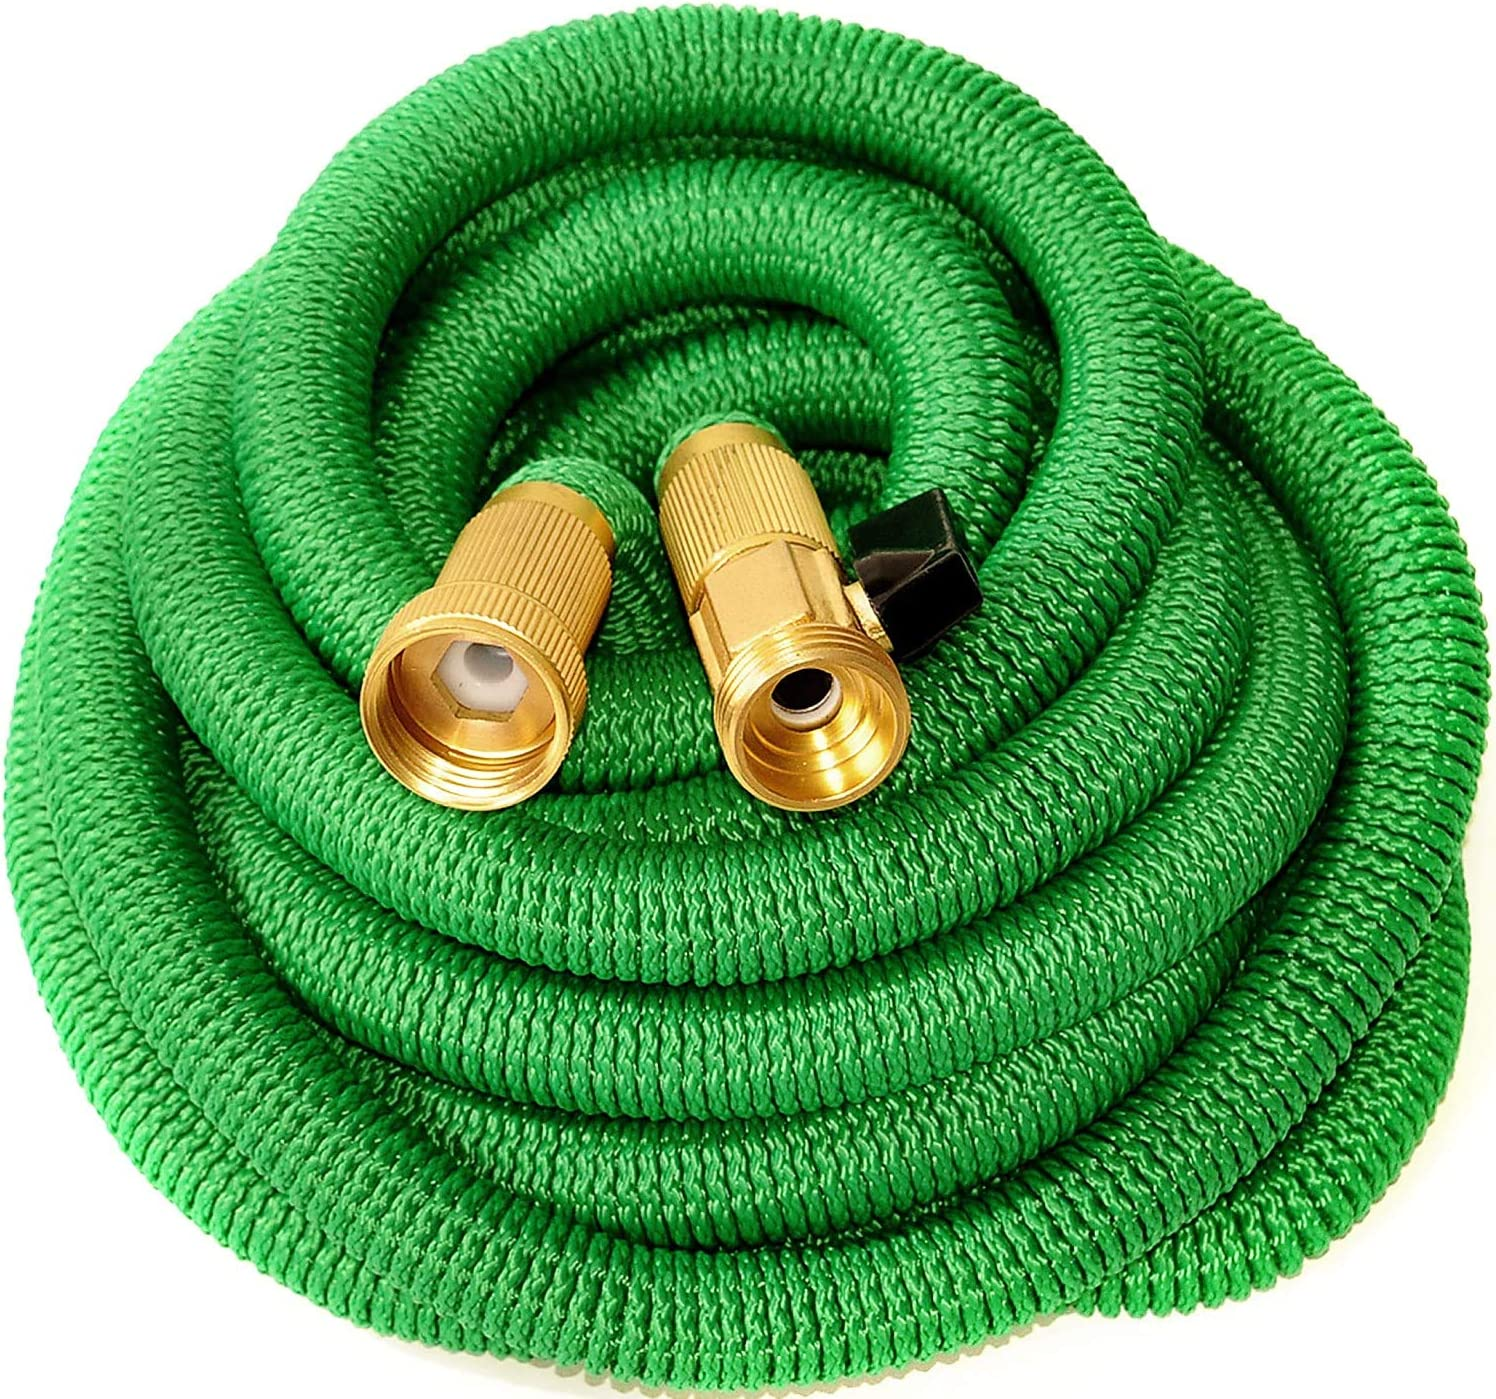 Zemov Expandable Garden Hose Green 50 FT, New 2021 - Heavy Duty Triple Latex Core with 3/4